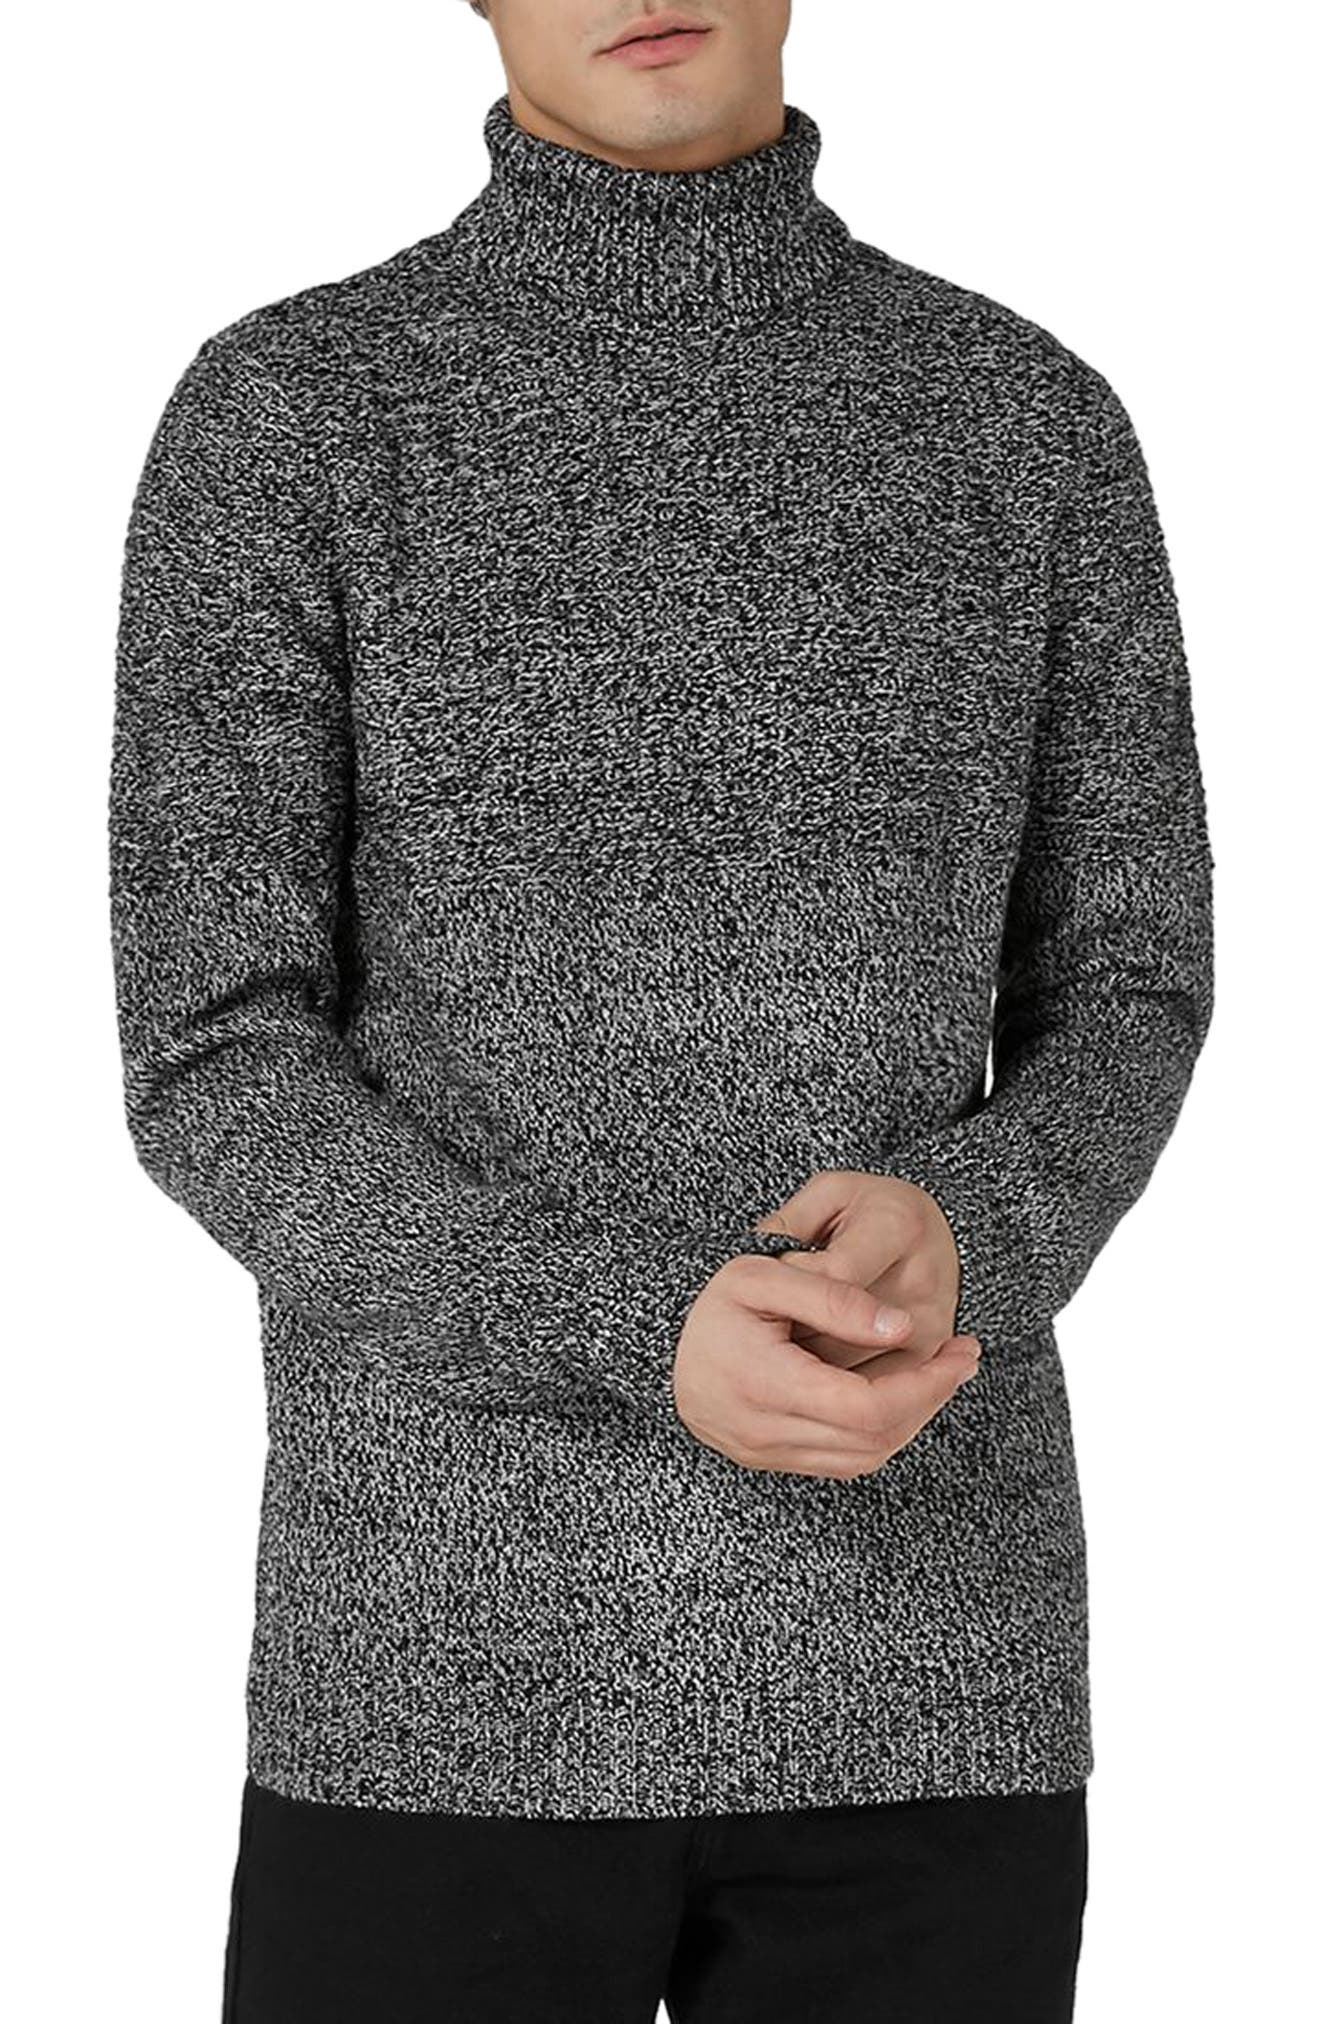 Twist Roll Neck Sweater,                         Main,                         color,